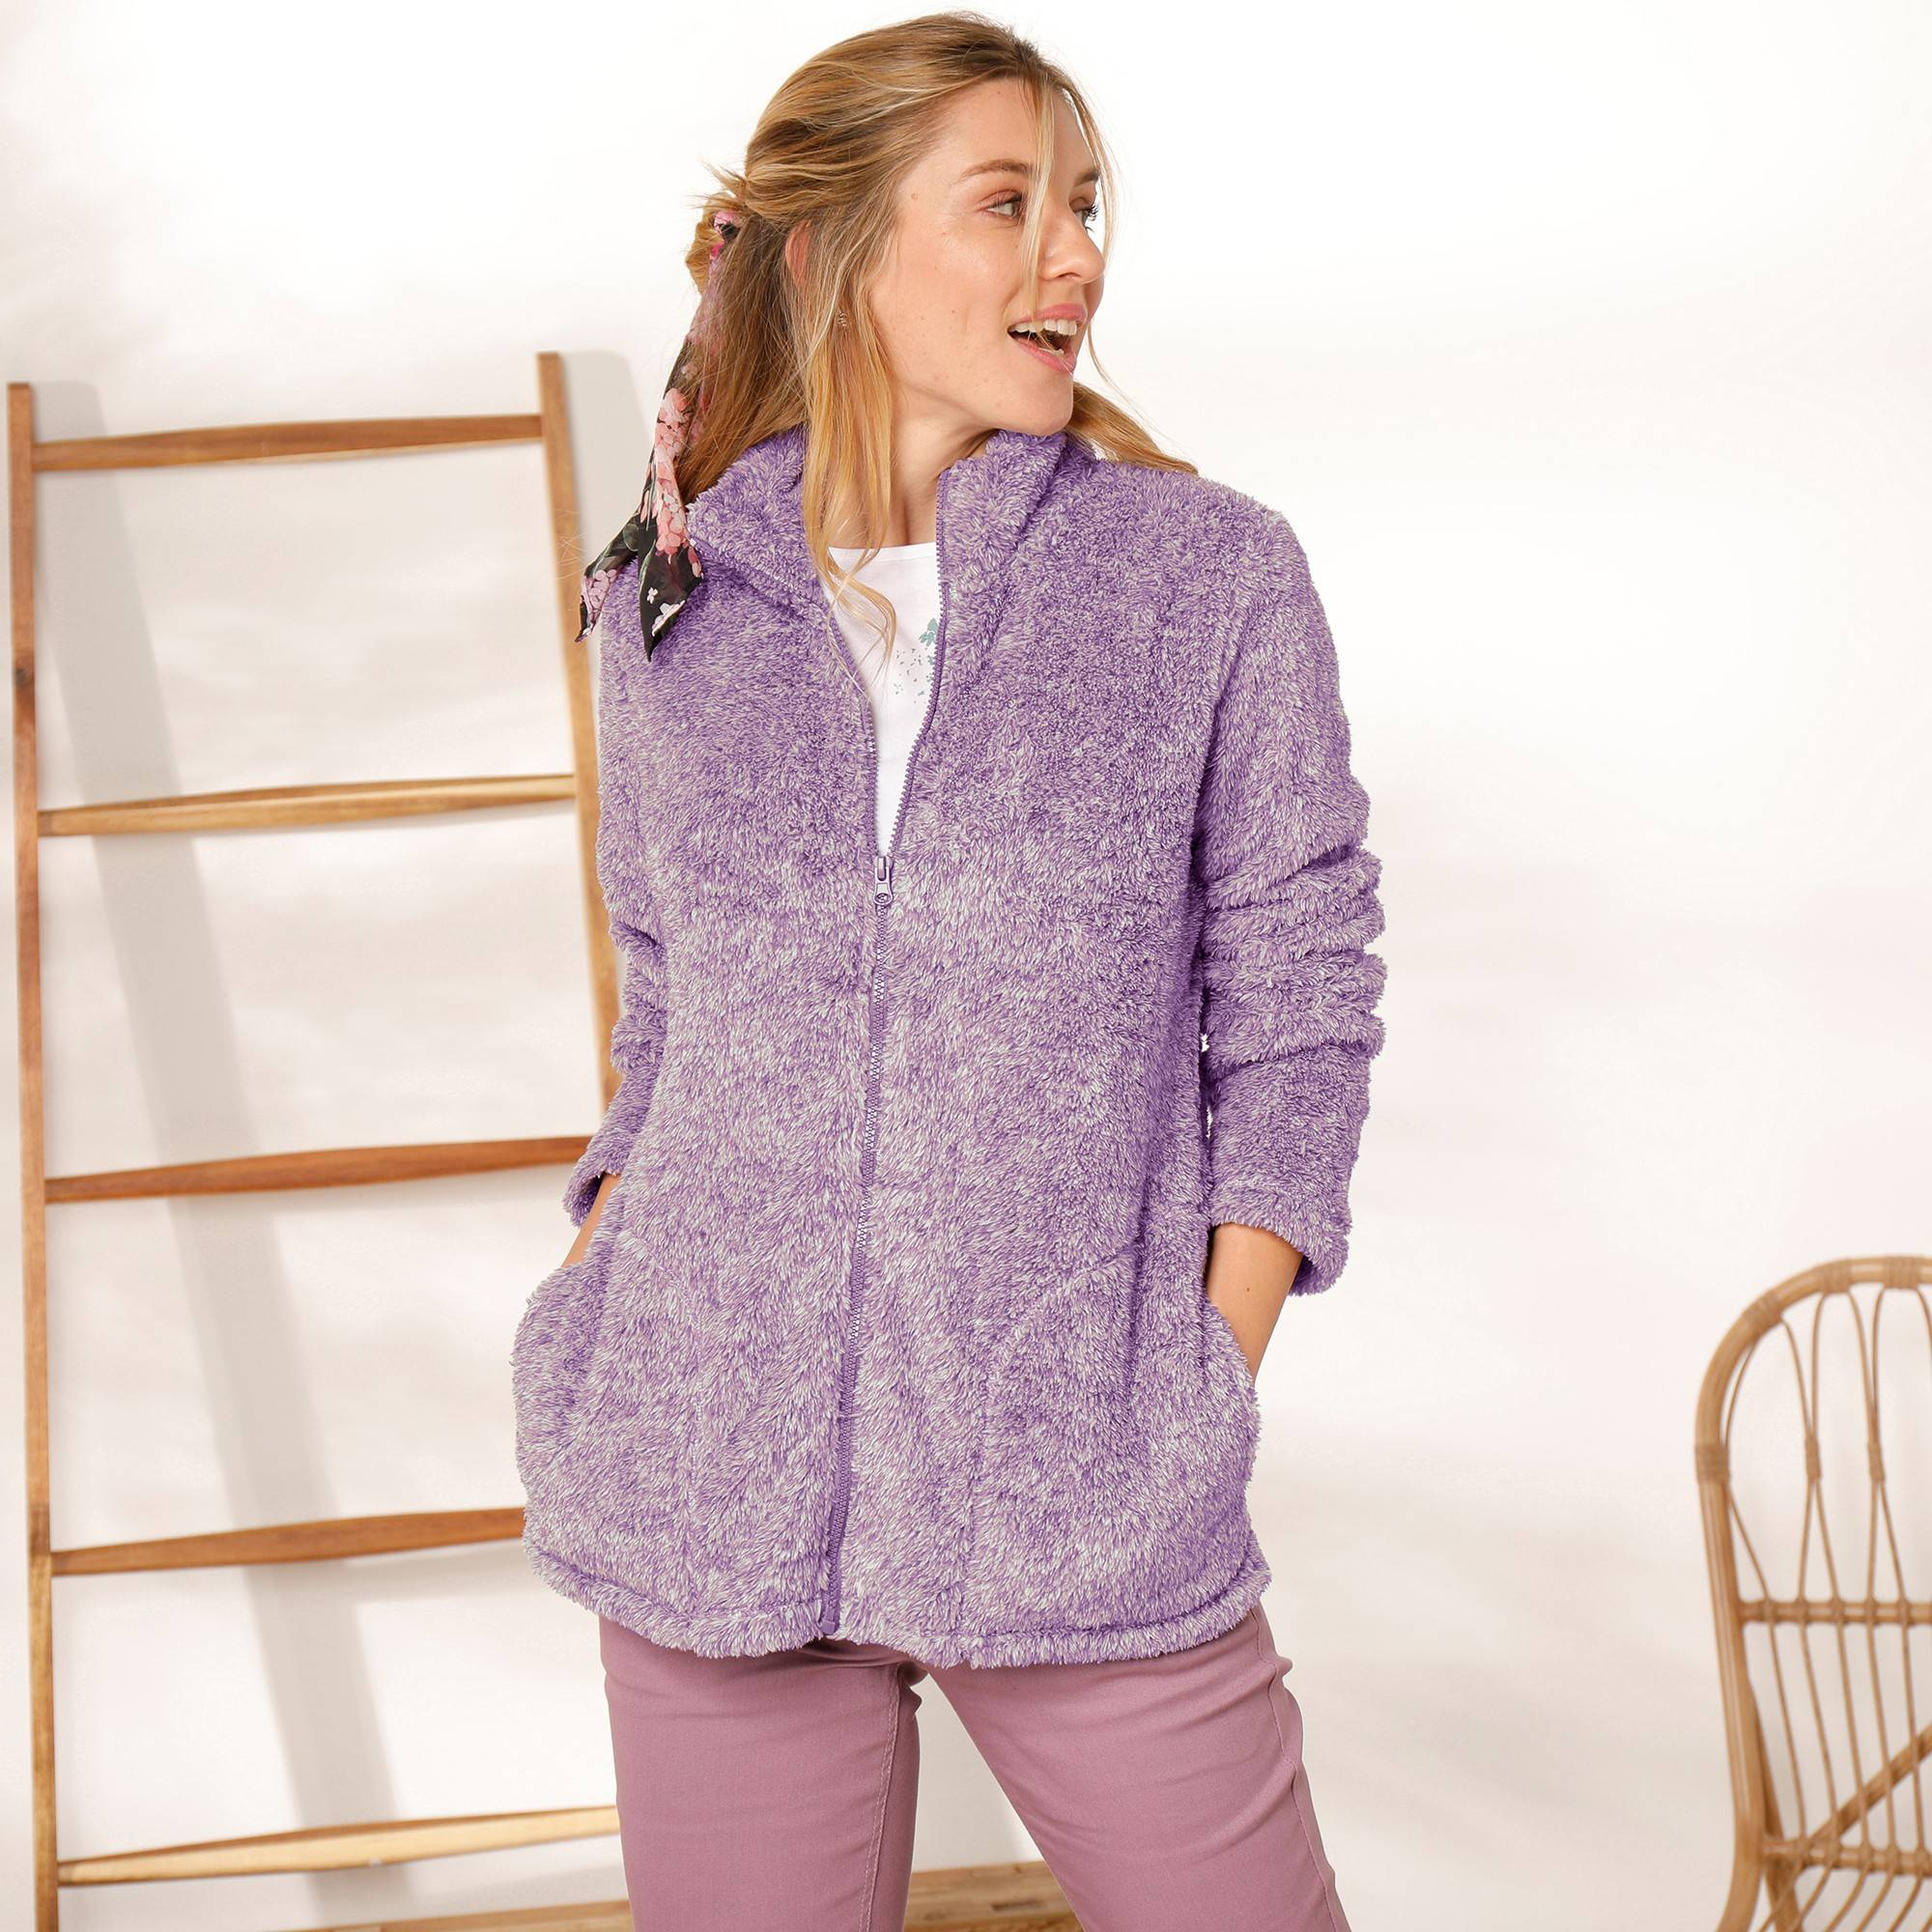 Casual Collection Veste maille peluche - Violet - Taille : 42,44 - Blancheporte